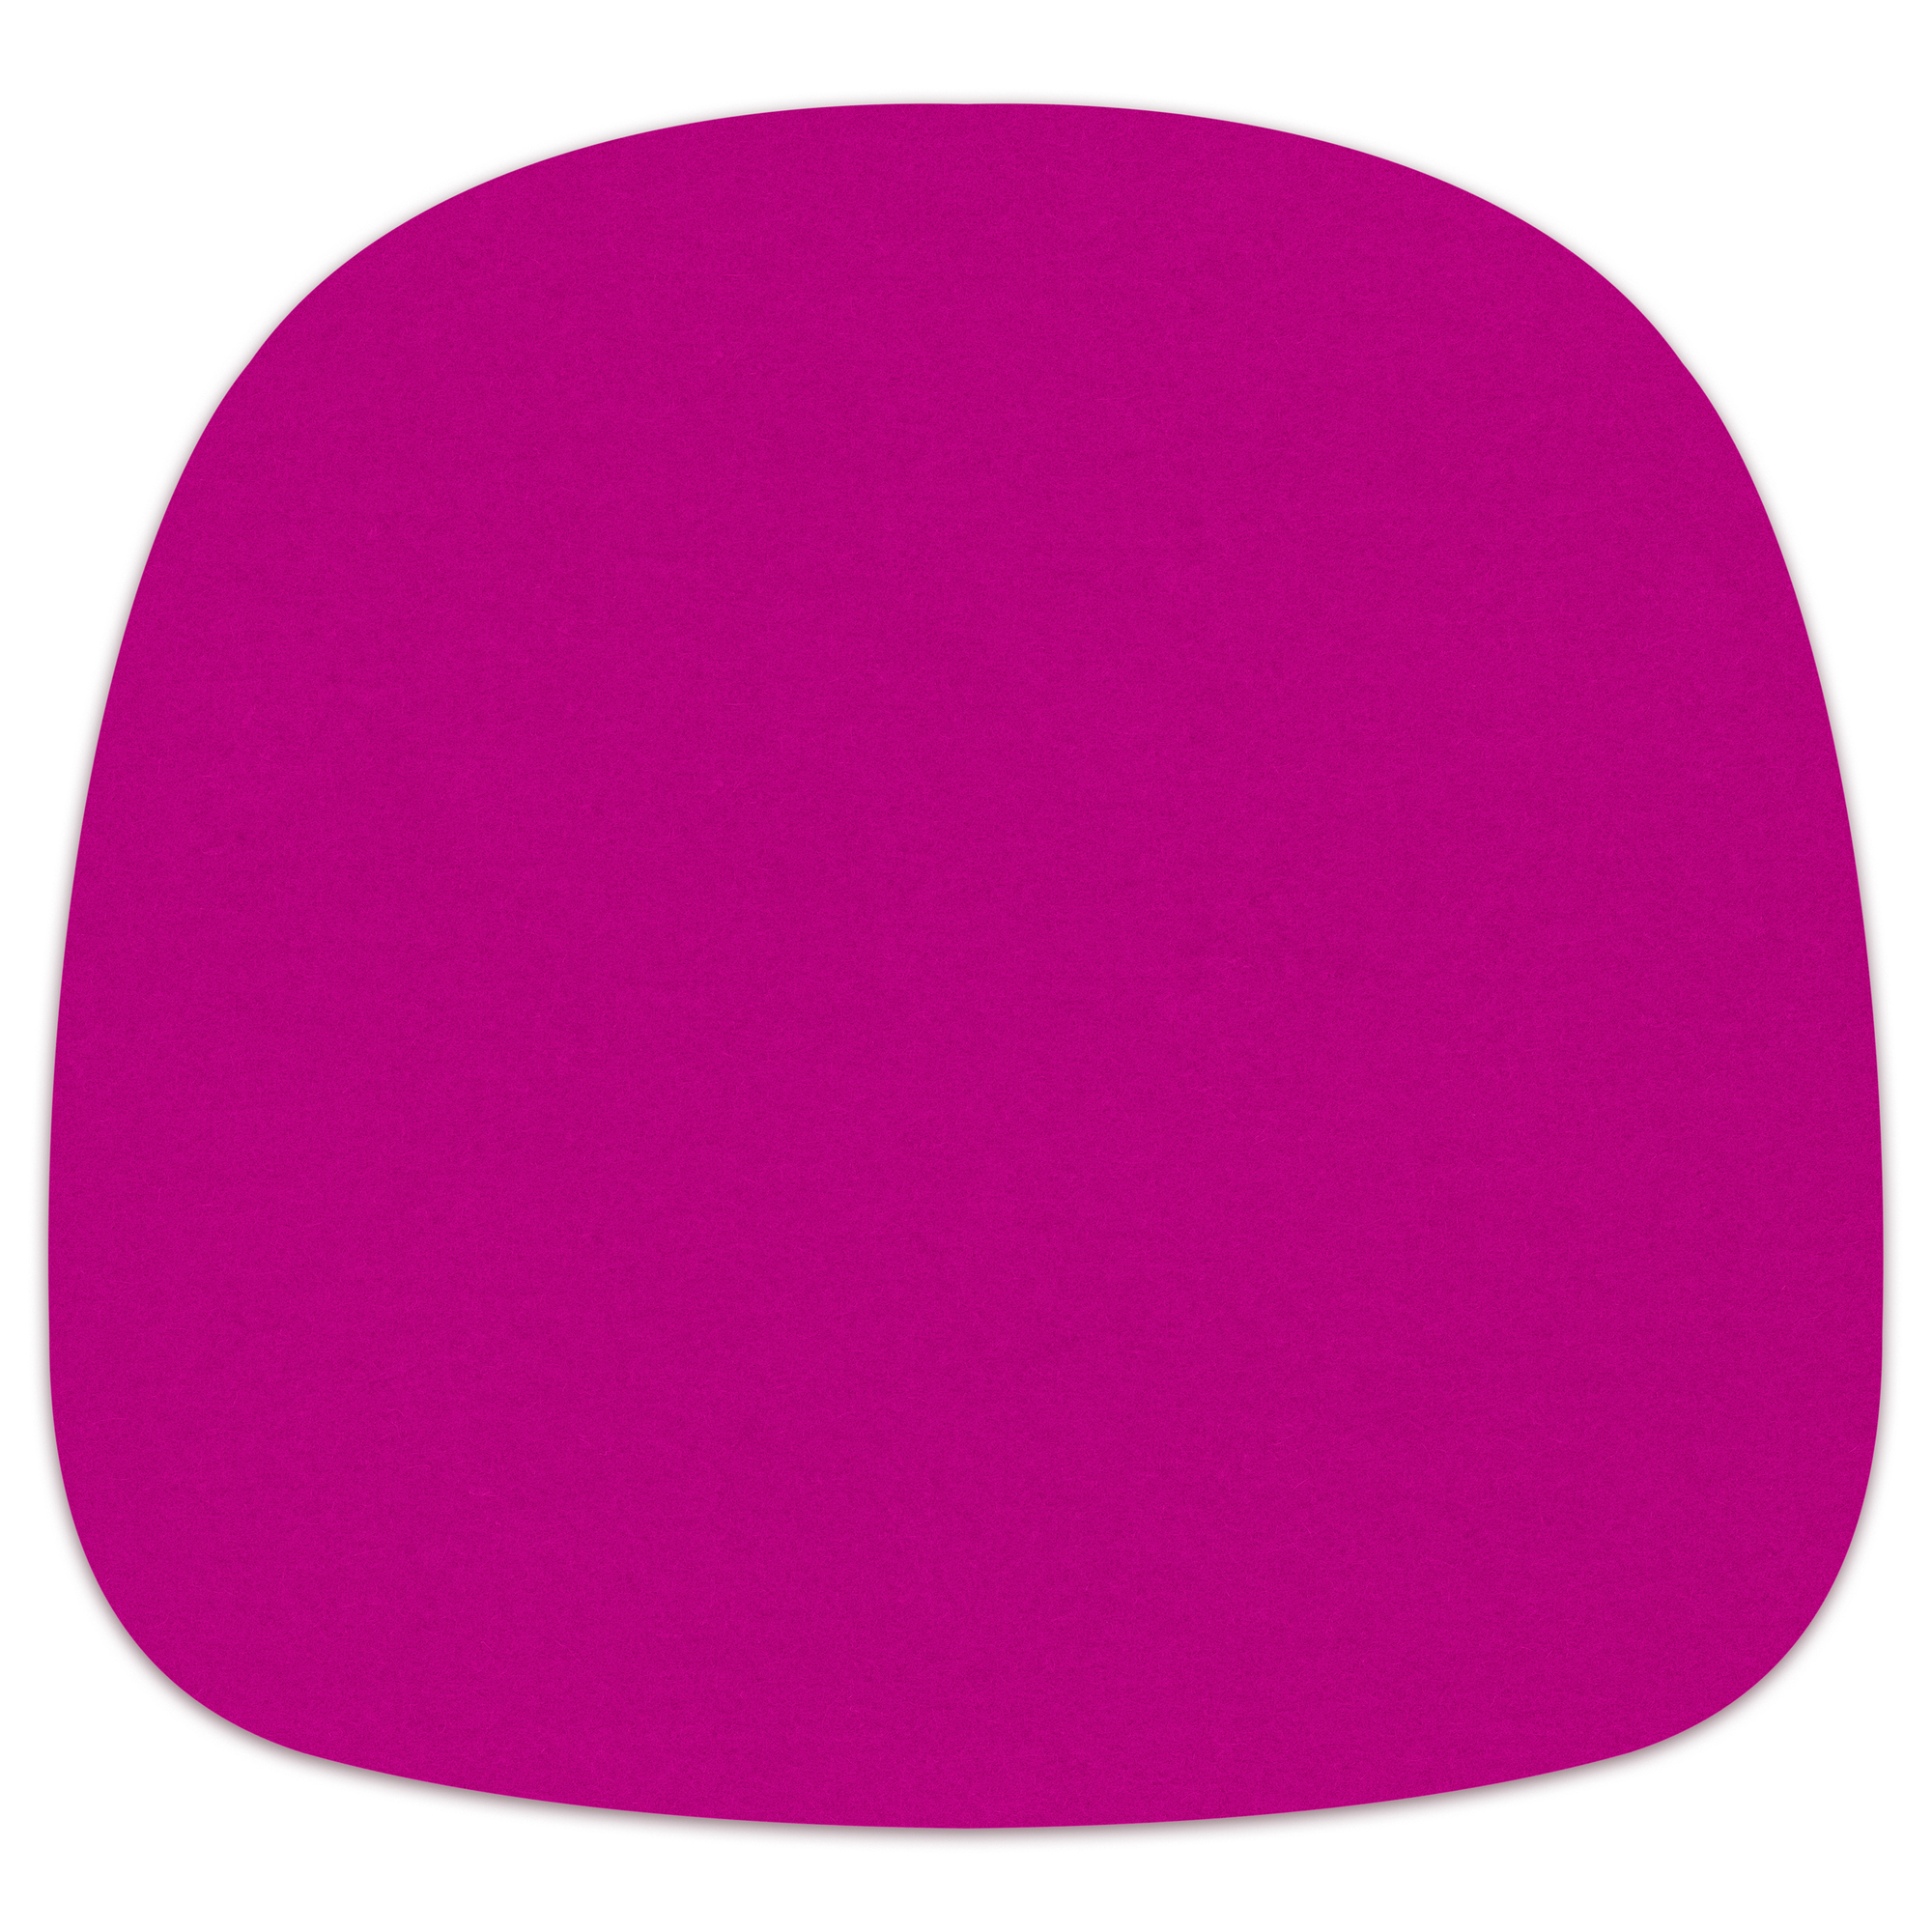 Sitzauflage - Filzauflage About A Chair AAC22 / AAC 22 Pink Hey Sign